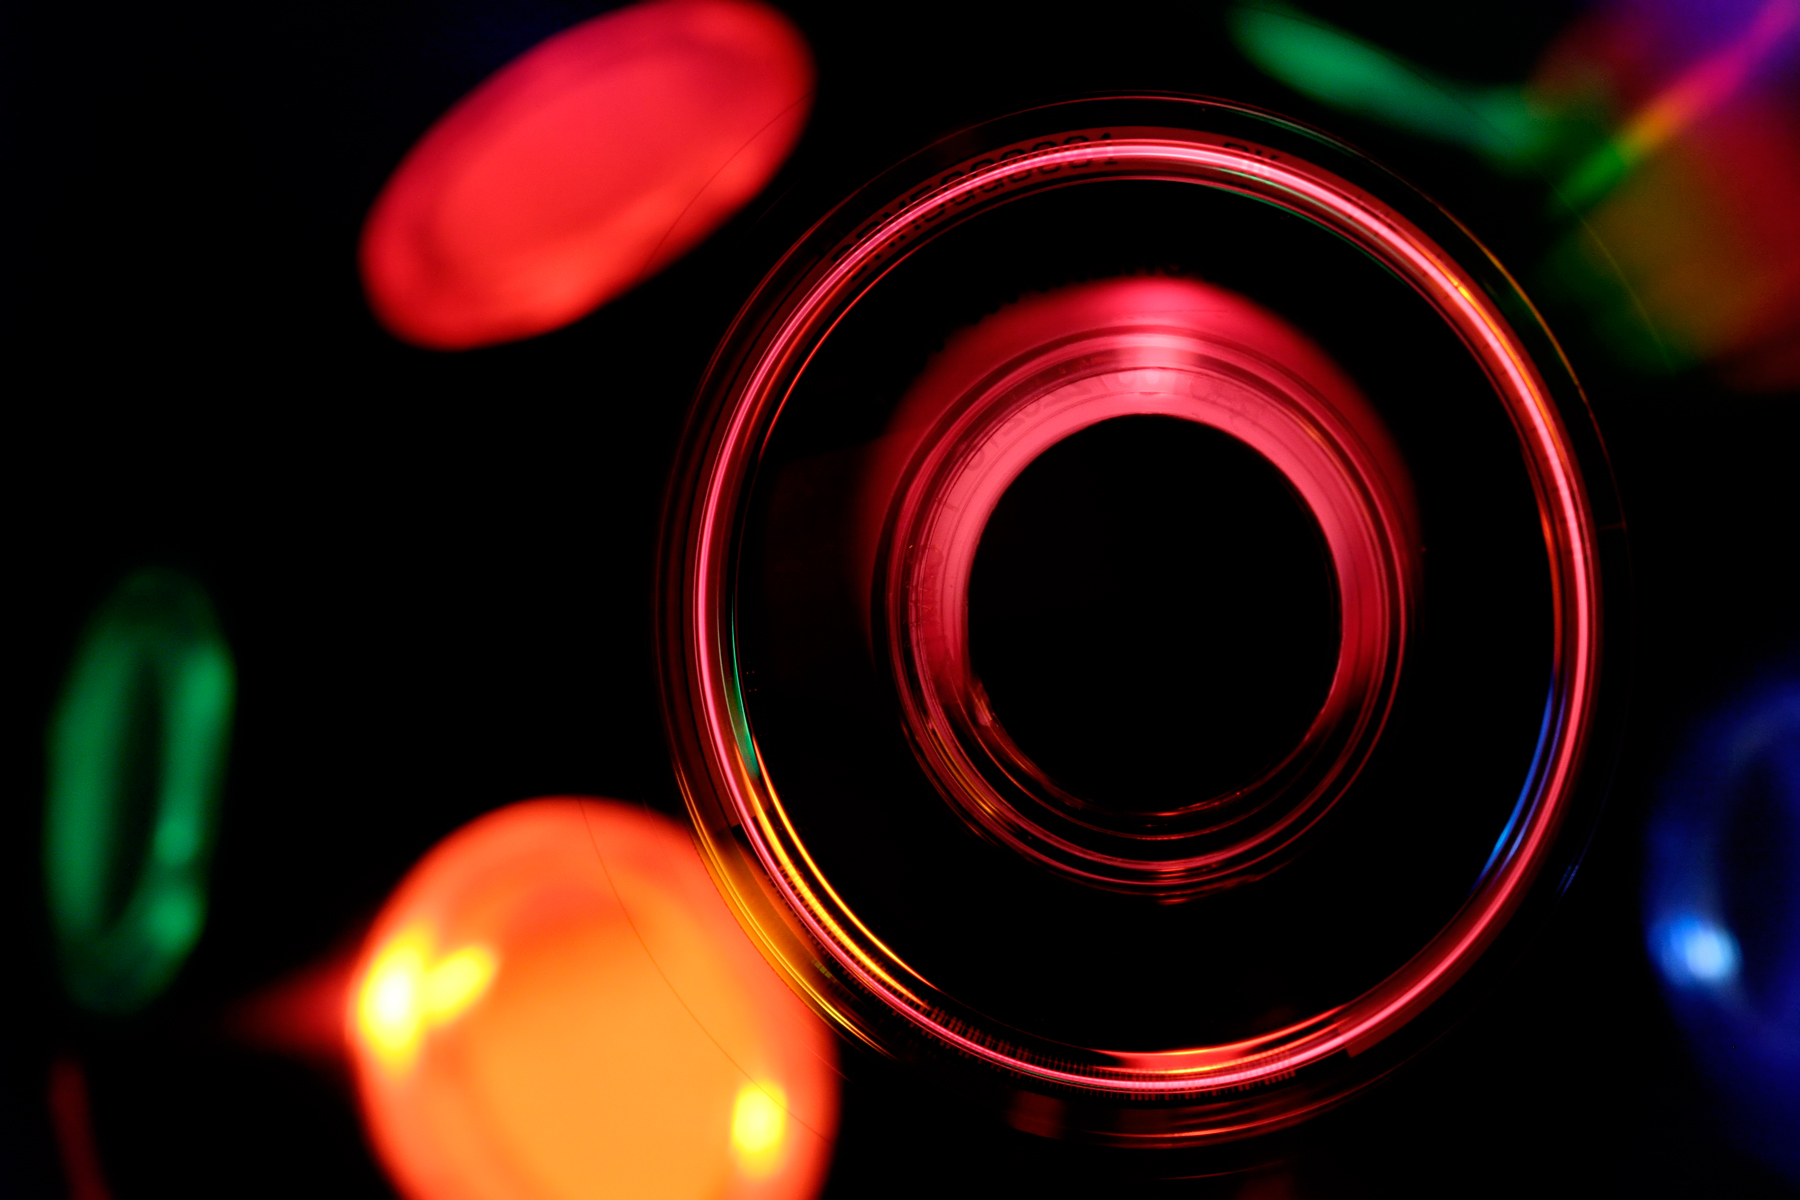 Disco Disc, Abstract, Photograph, Light, Lights, HQ Photo